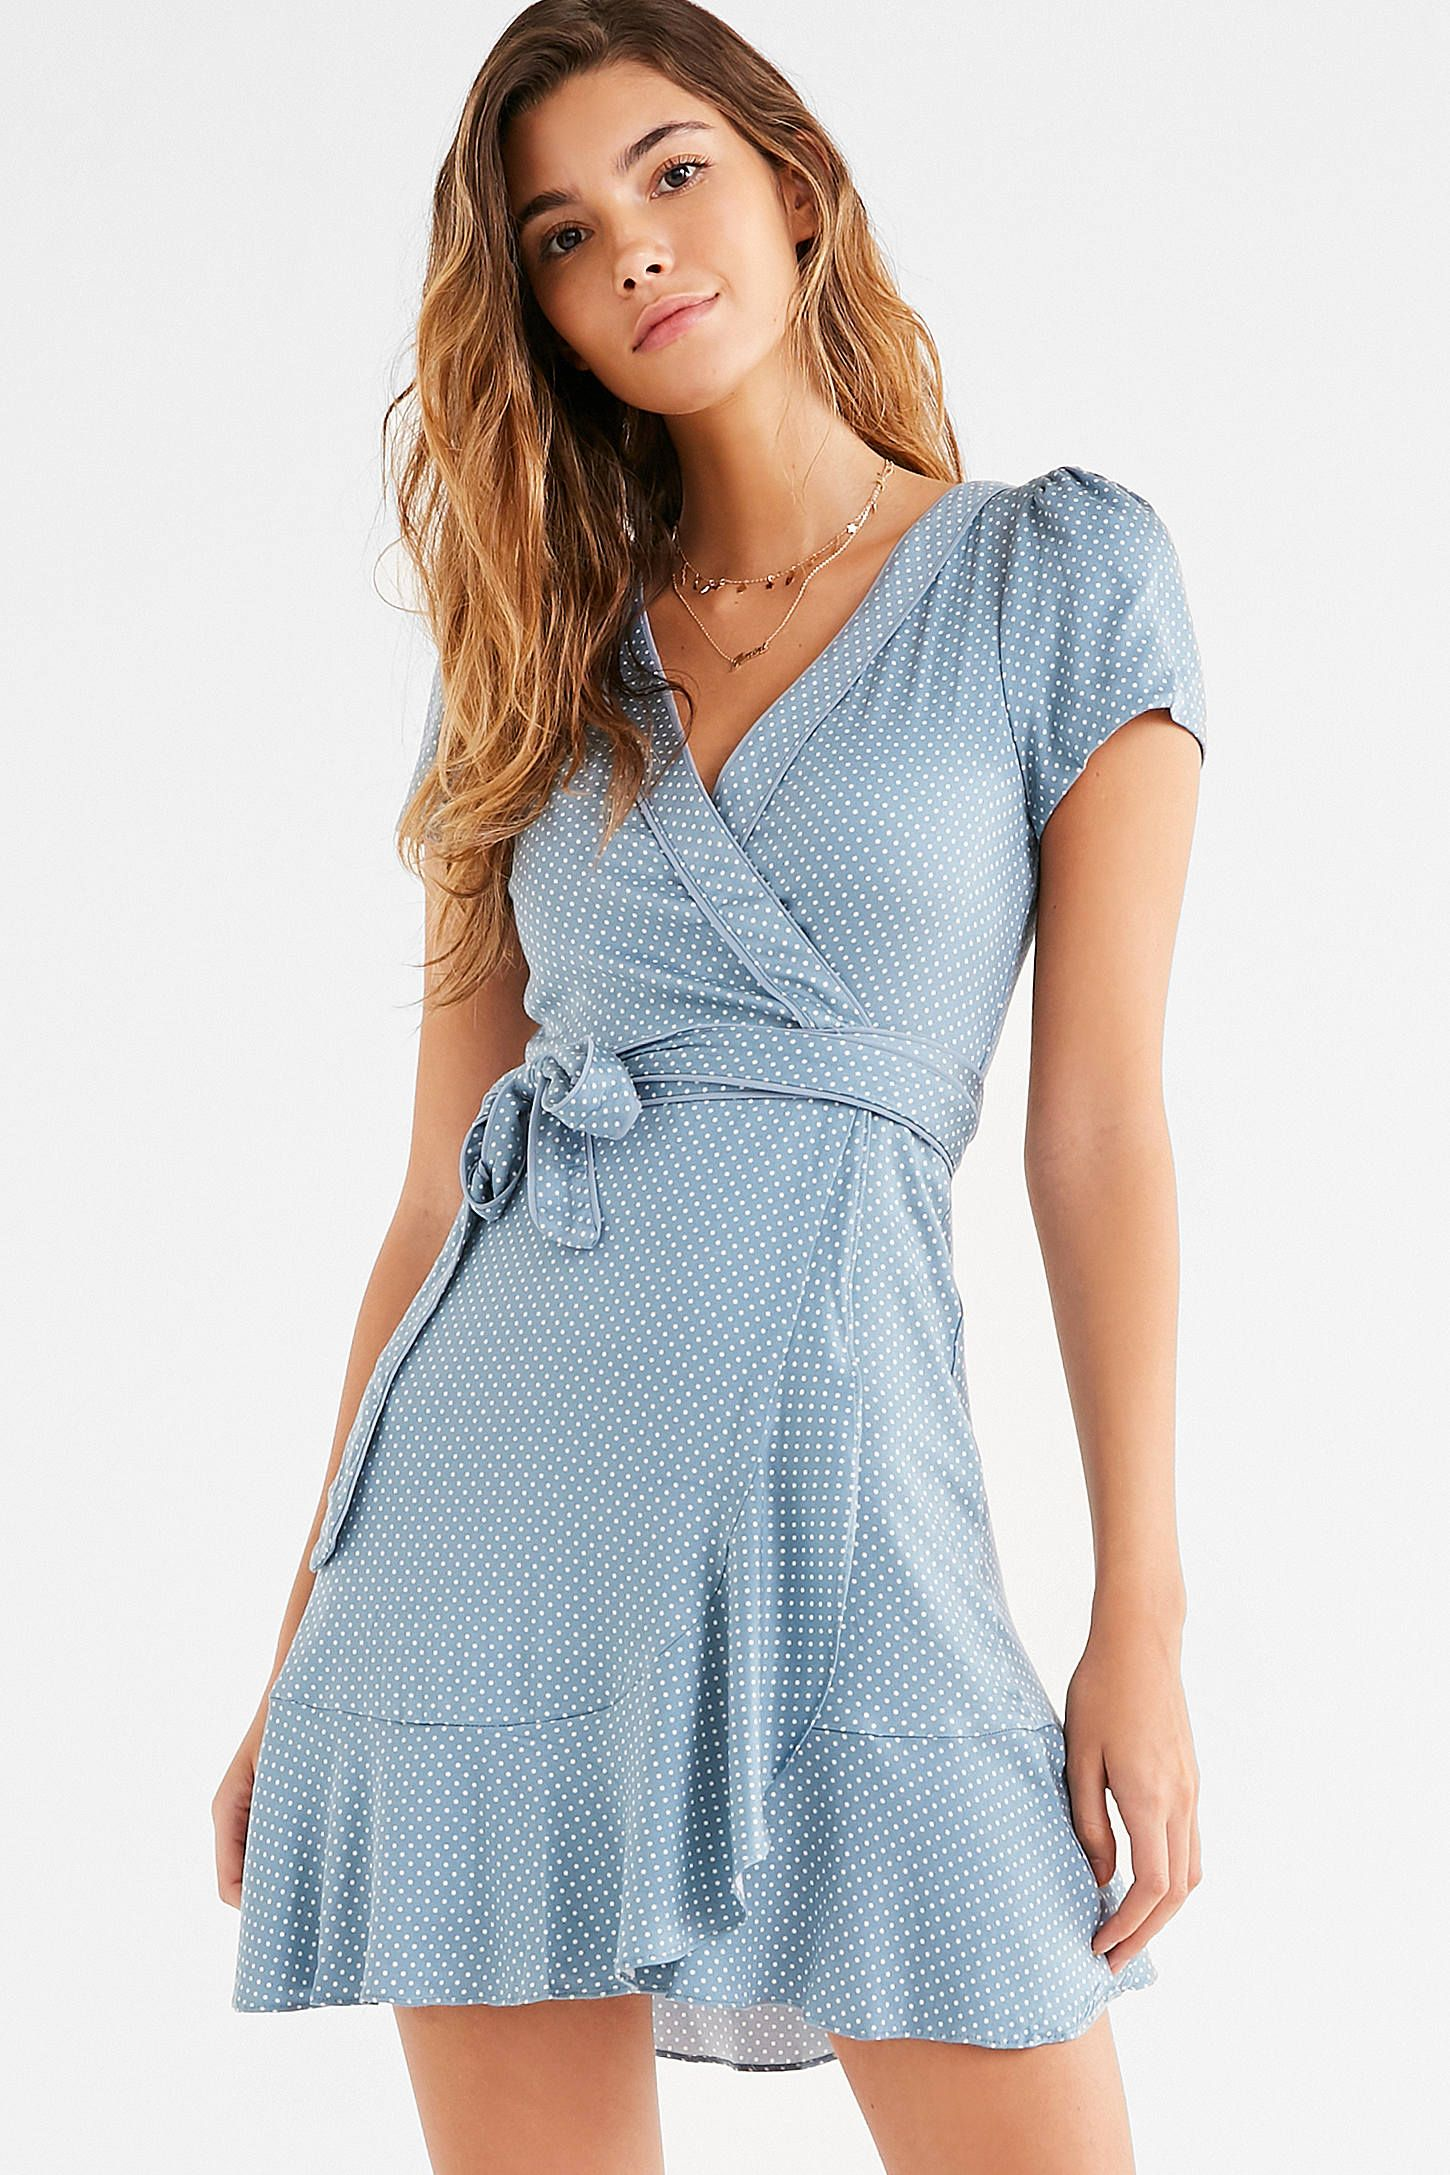 cd470a4eb35d Shop Kimchi Blue Rita Wrap Dress at Urban Outfitters today. We carry all  the latest styles, colors and brands for you to choose from right here.